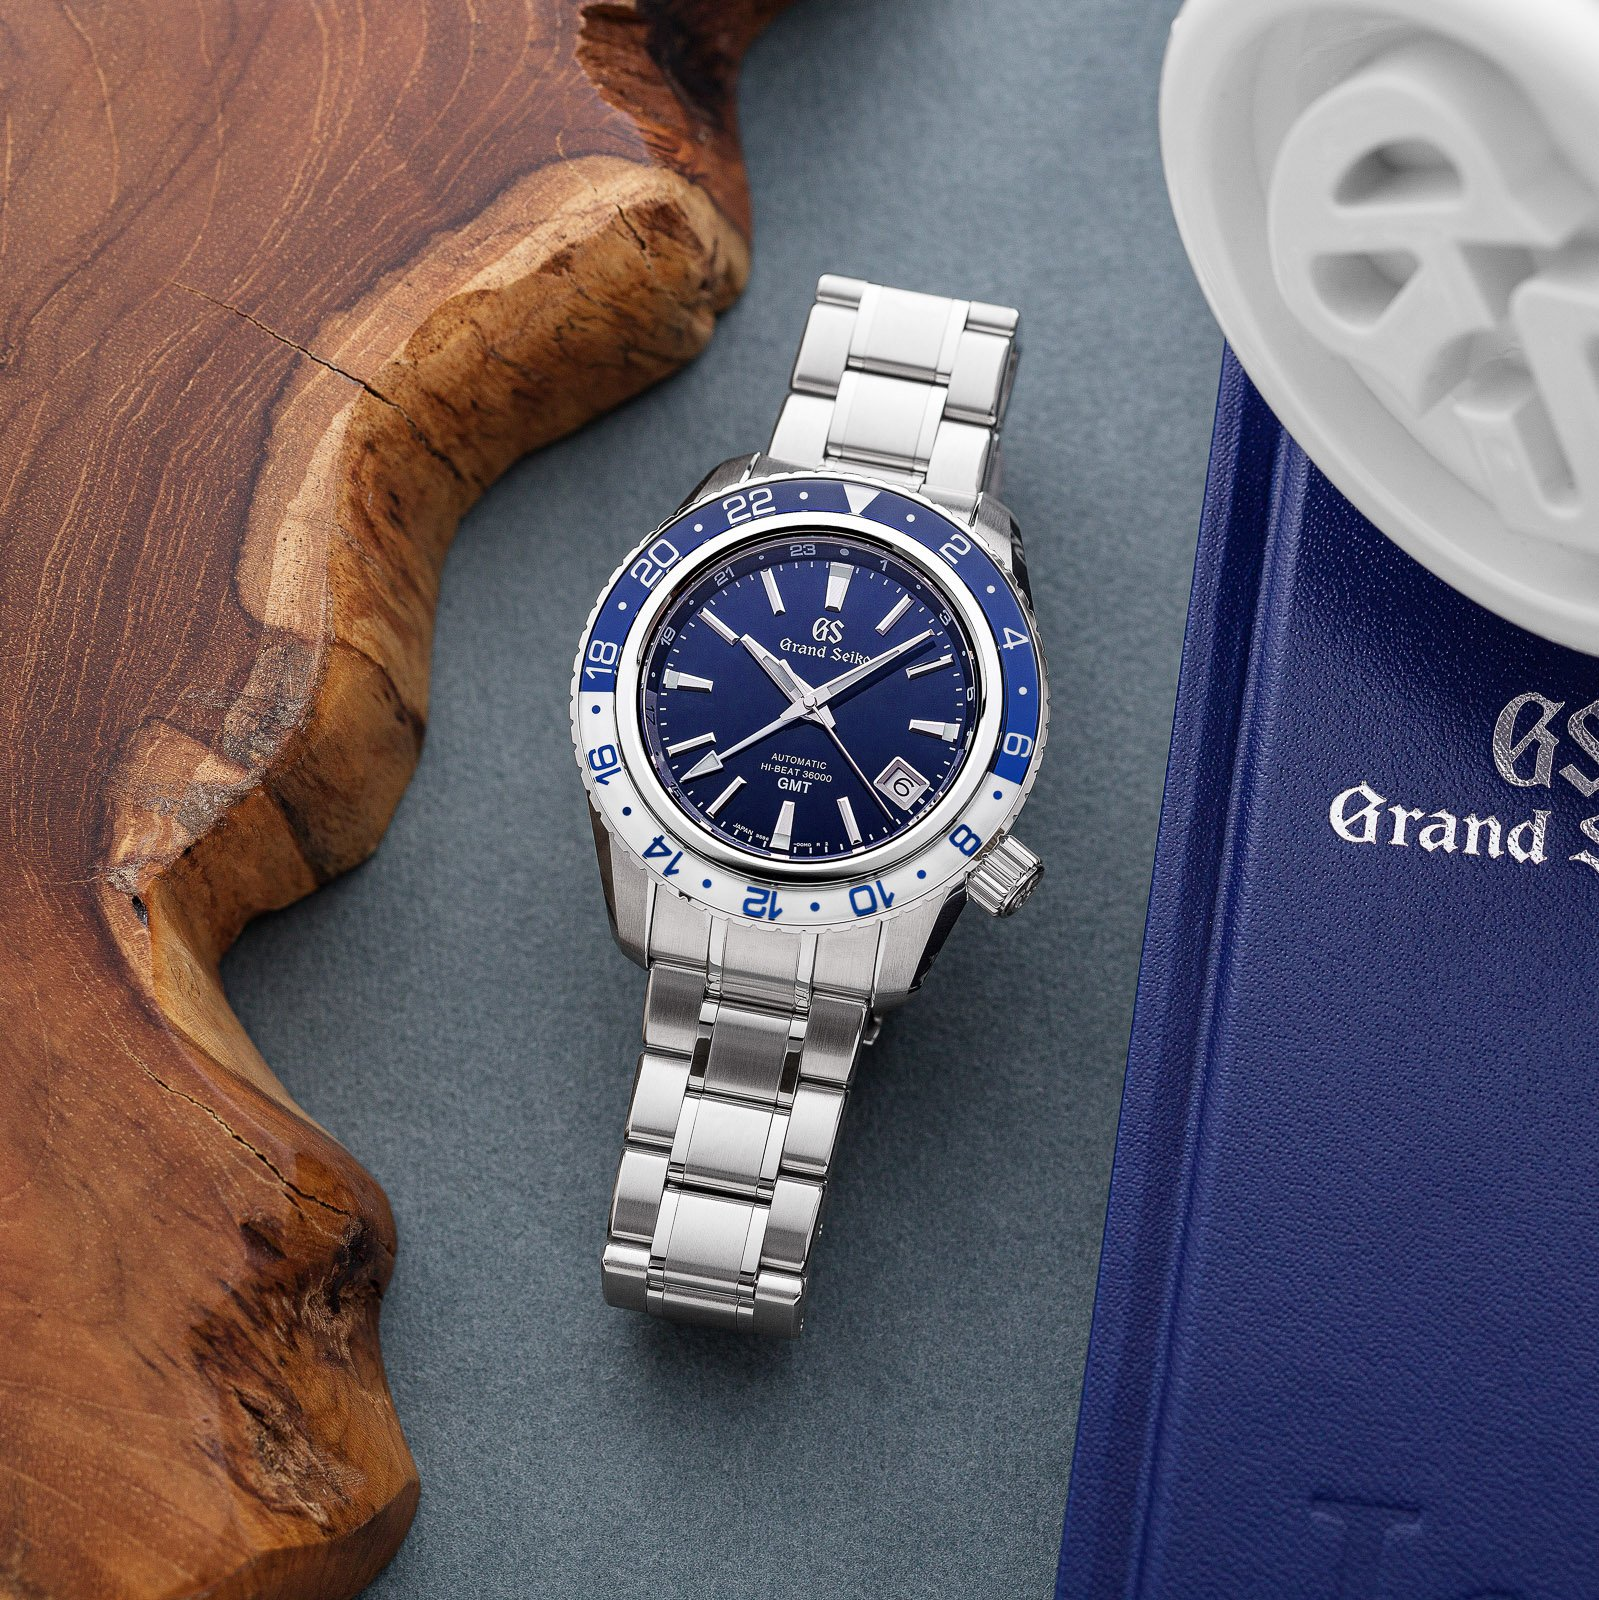 Grand Seiko SBGJ237 - blue dial stainless steel wristwatch with a two-tone bezel atop a table.